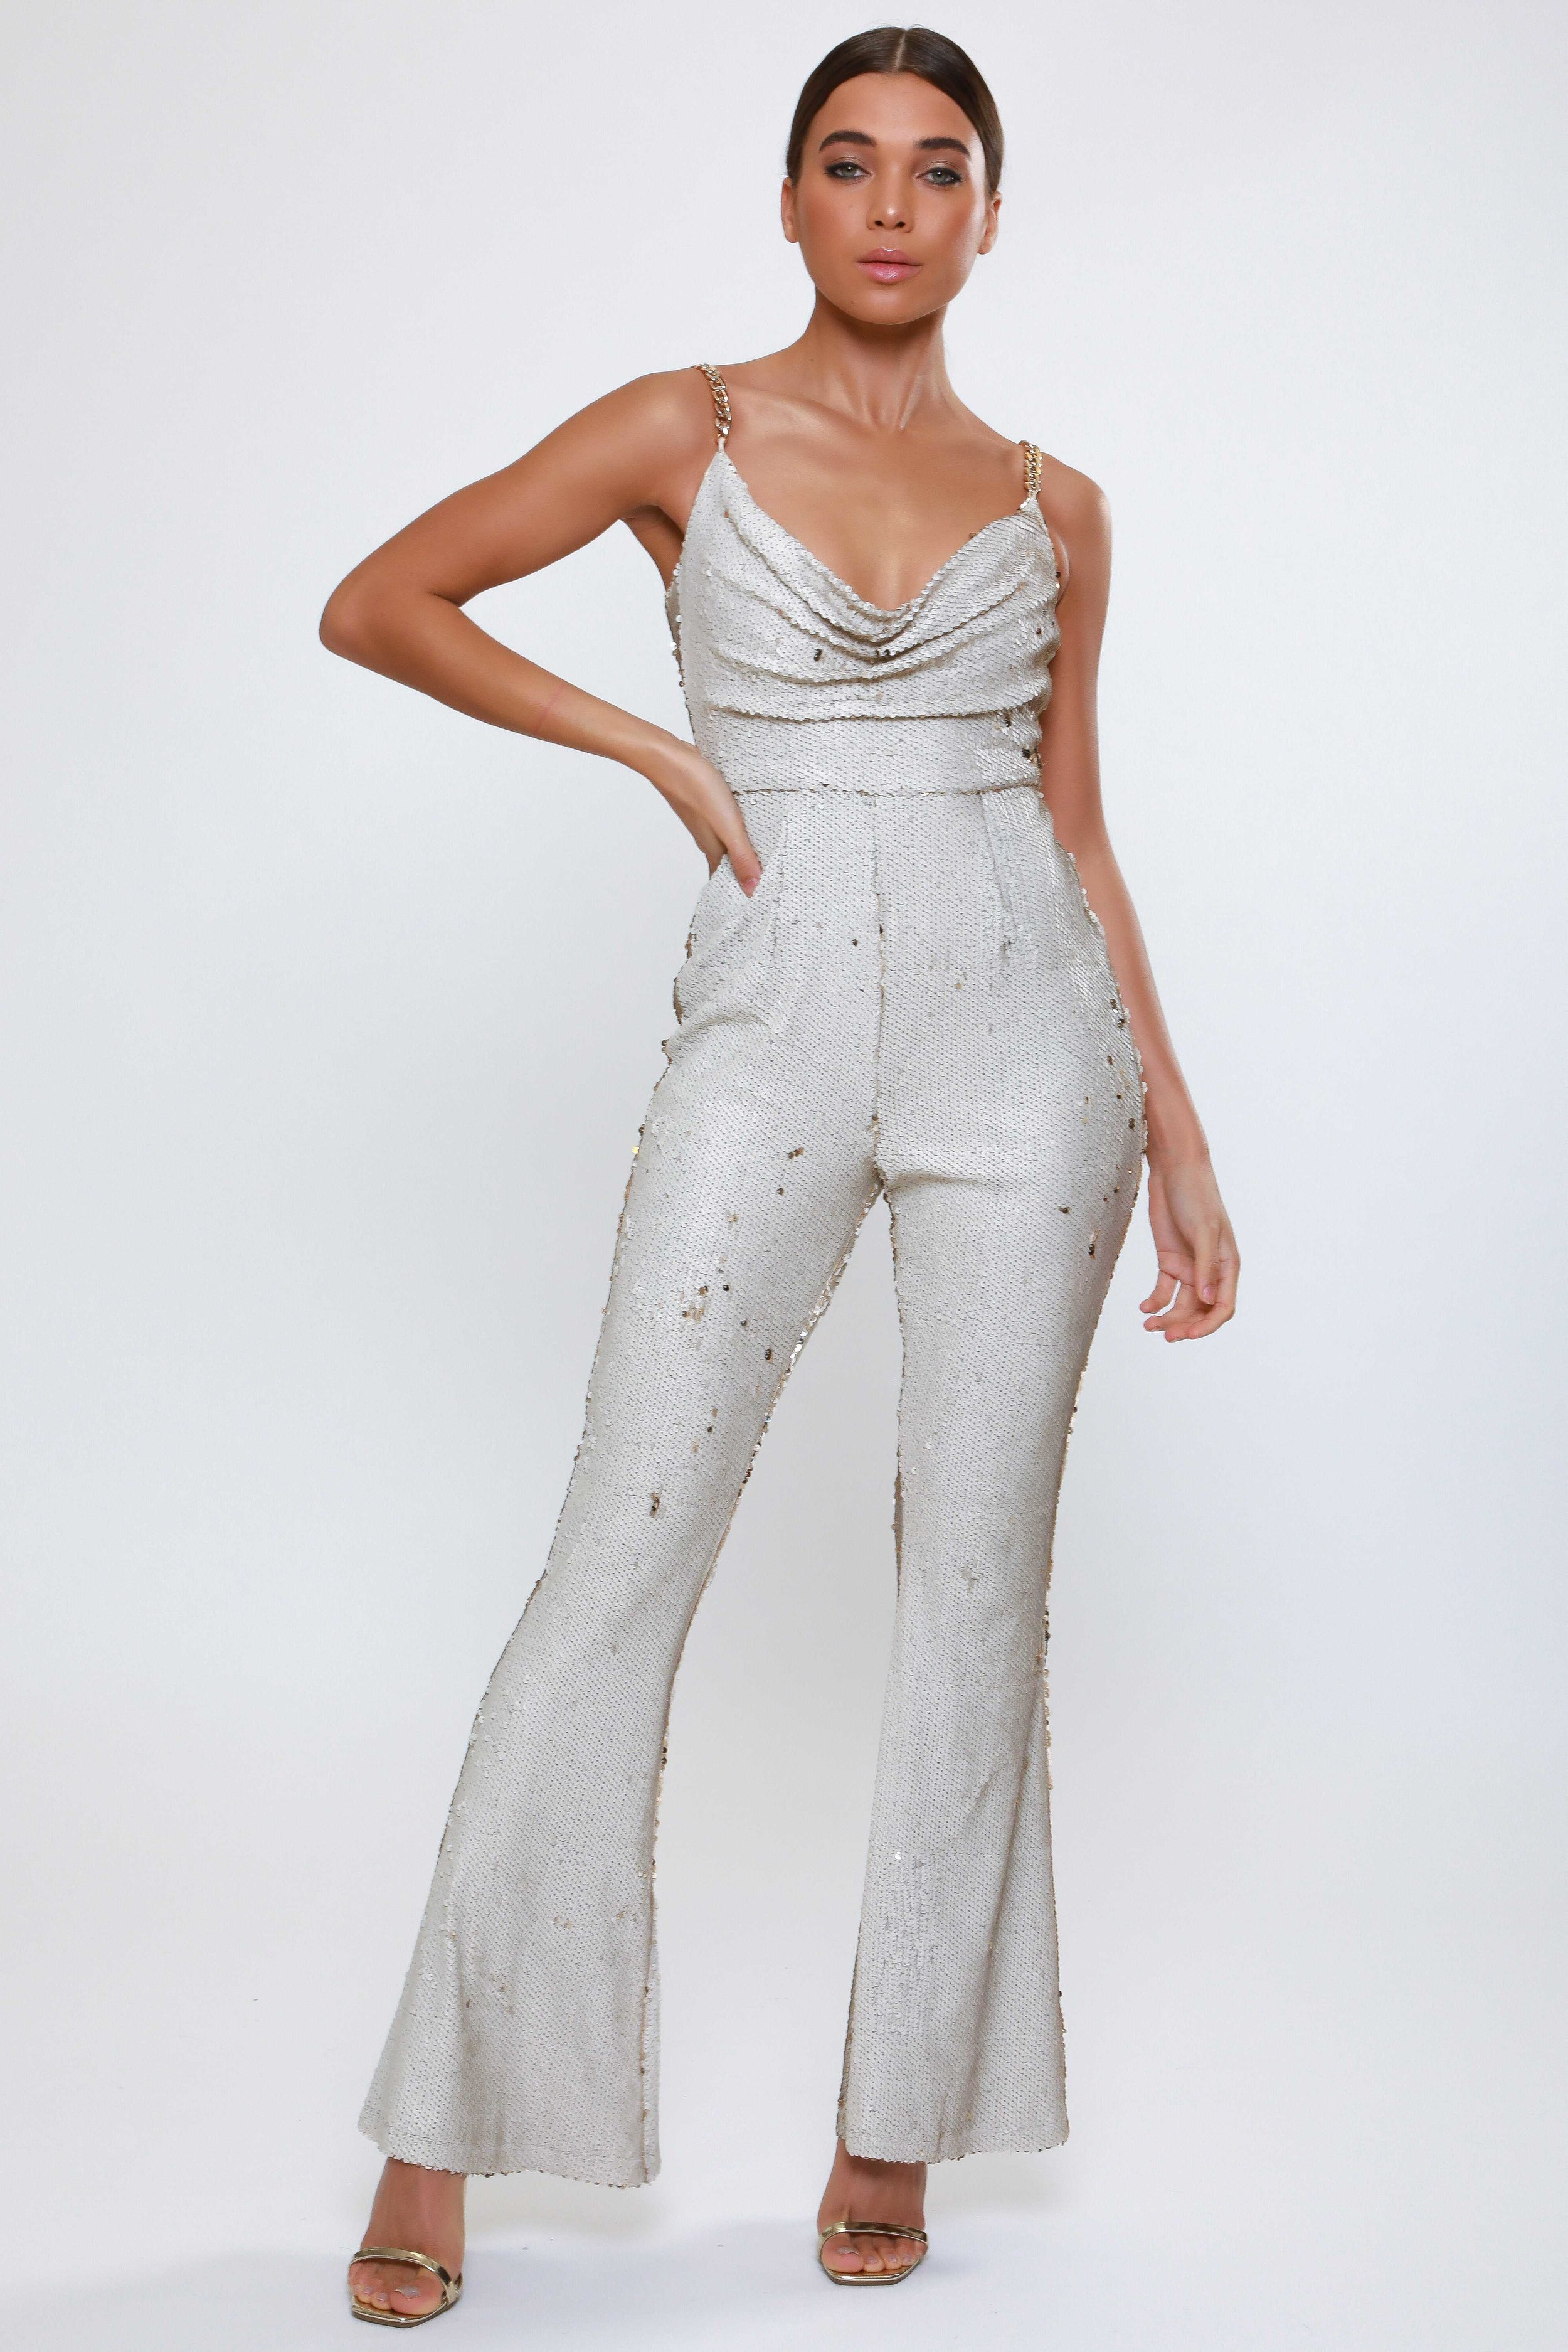 Sequin Cowl Flared  Leg Jumpsuit   £110.00